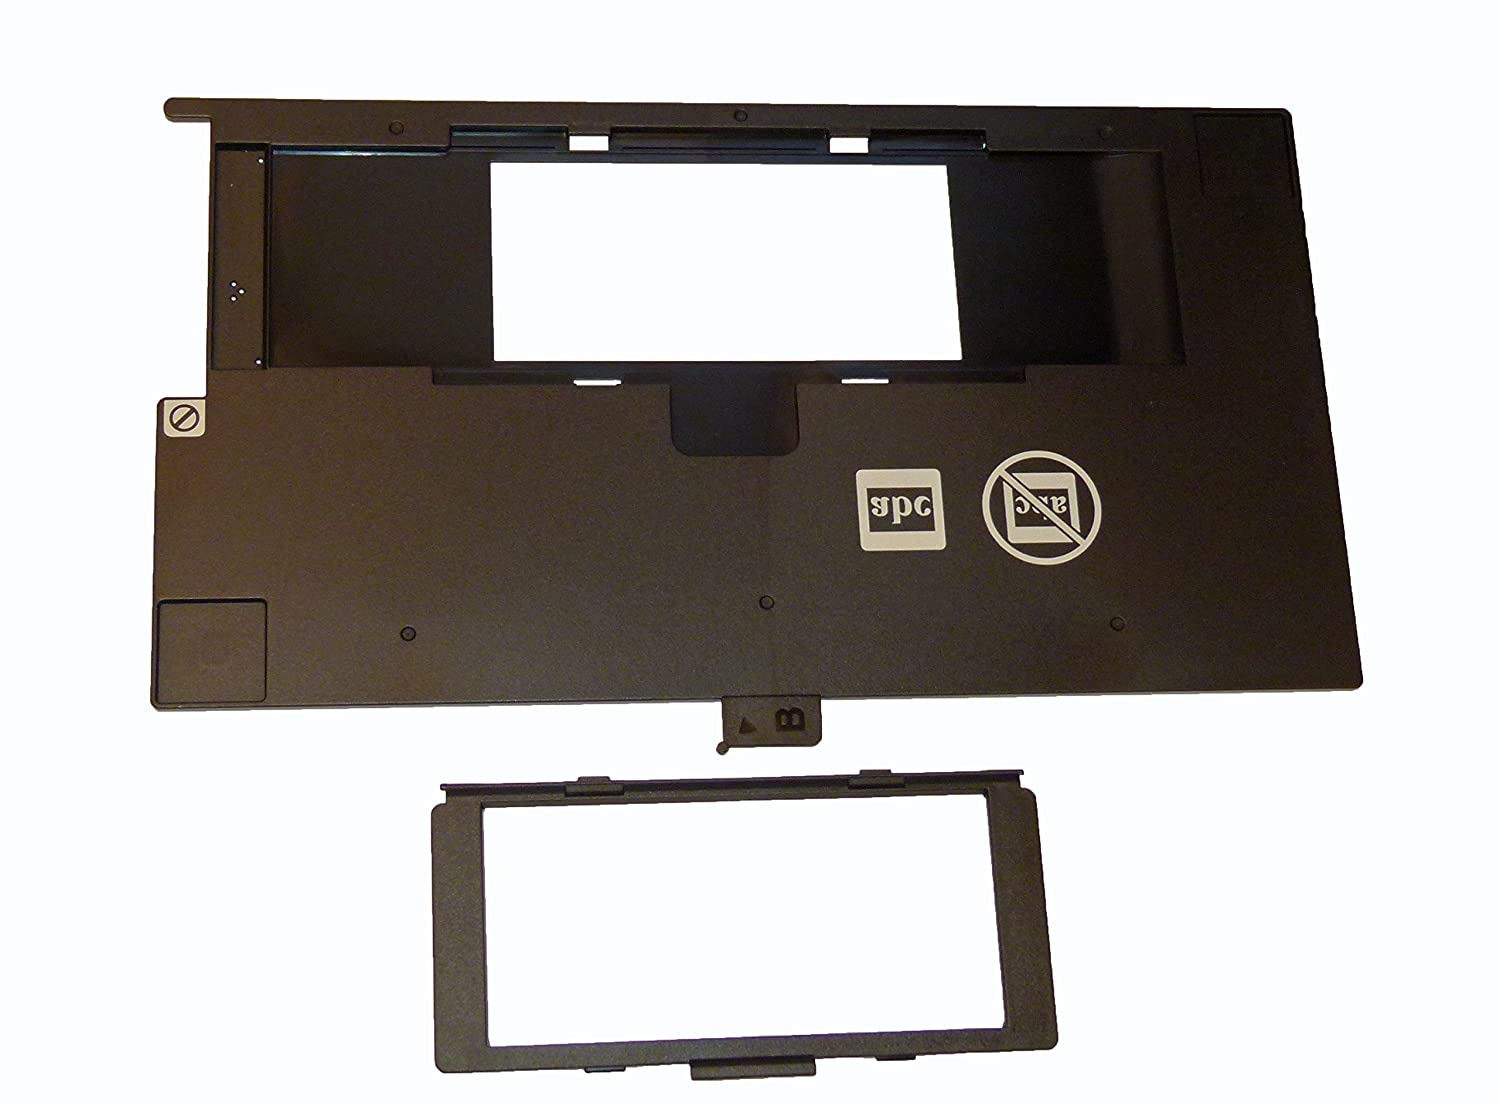 Epson Perfection 4490 - 120, 220, 620 Holder - Film Guide